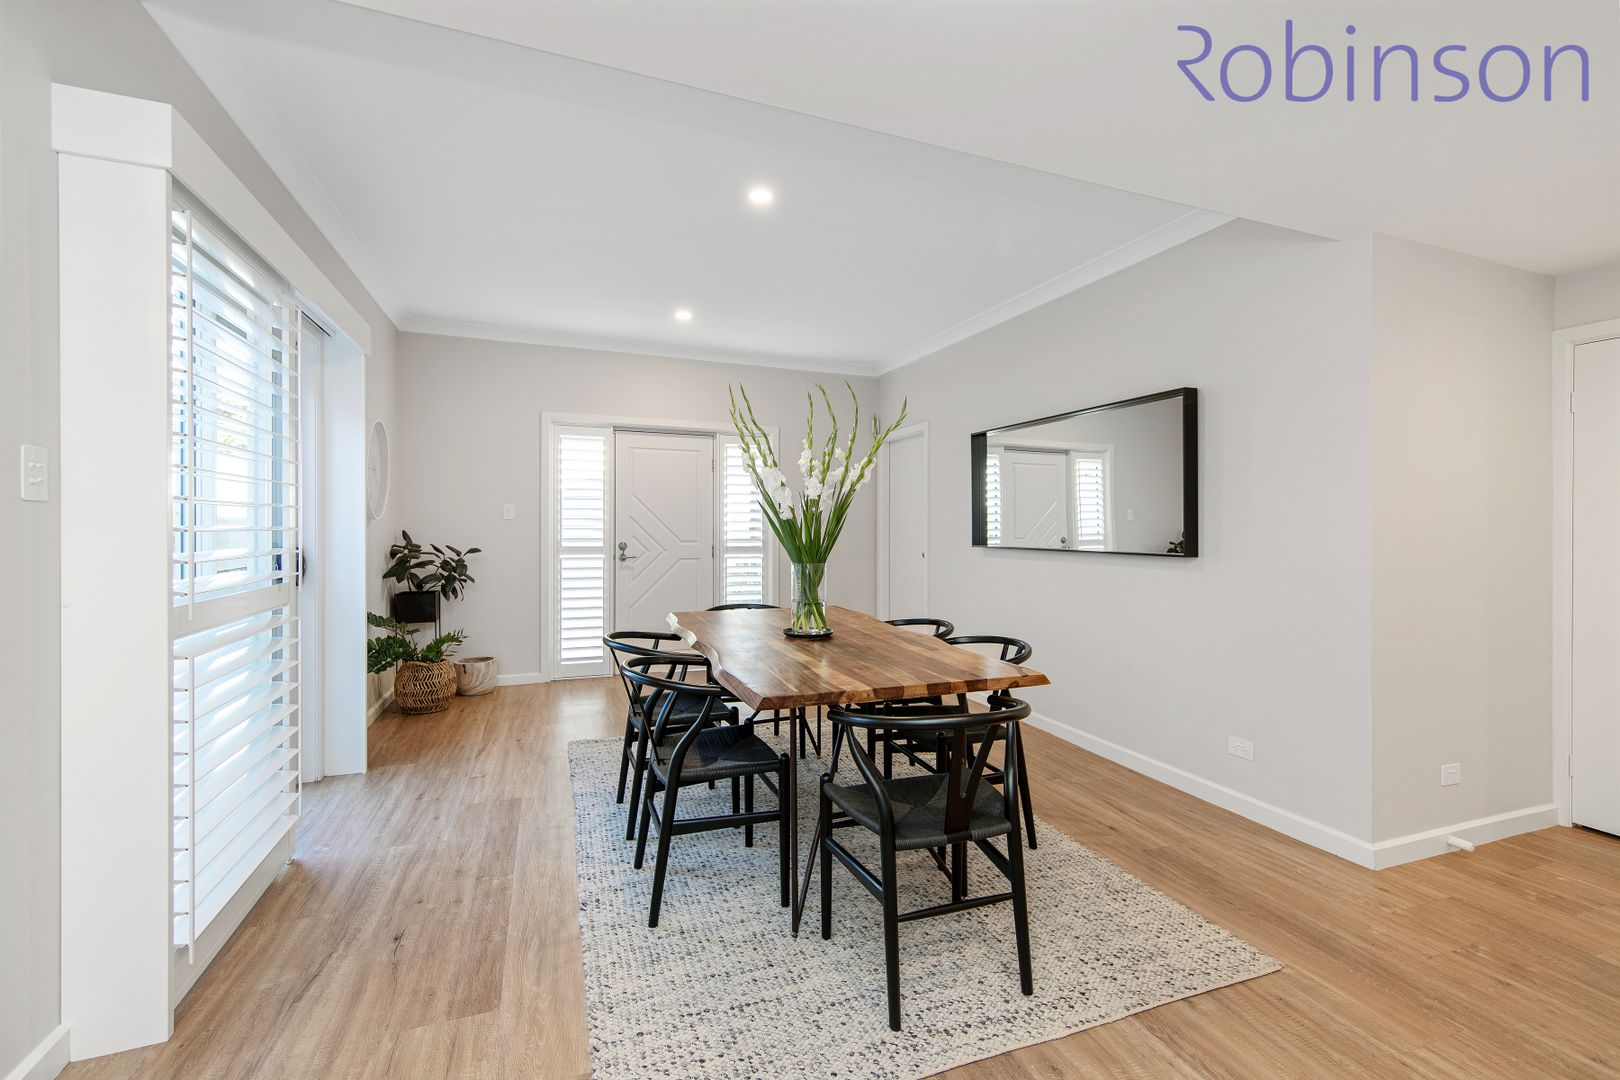 15/1 Queen Street, The Hill NSW 2300, Image 2